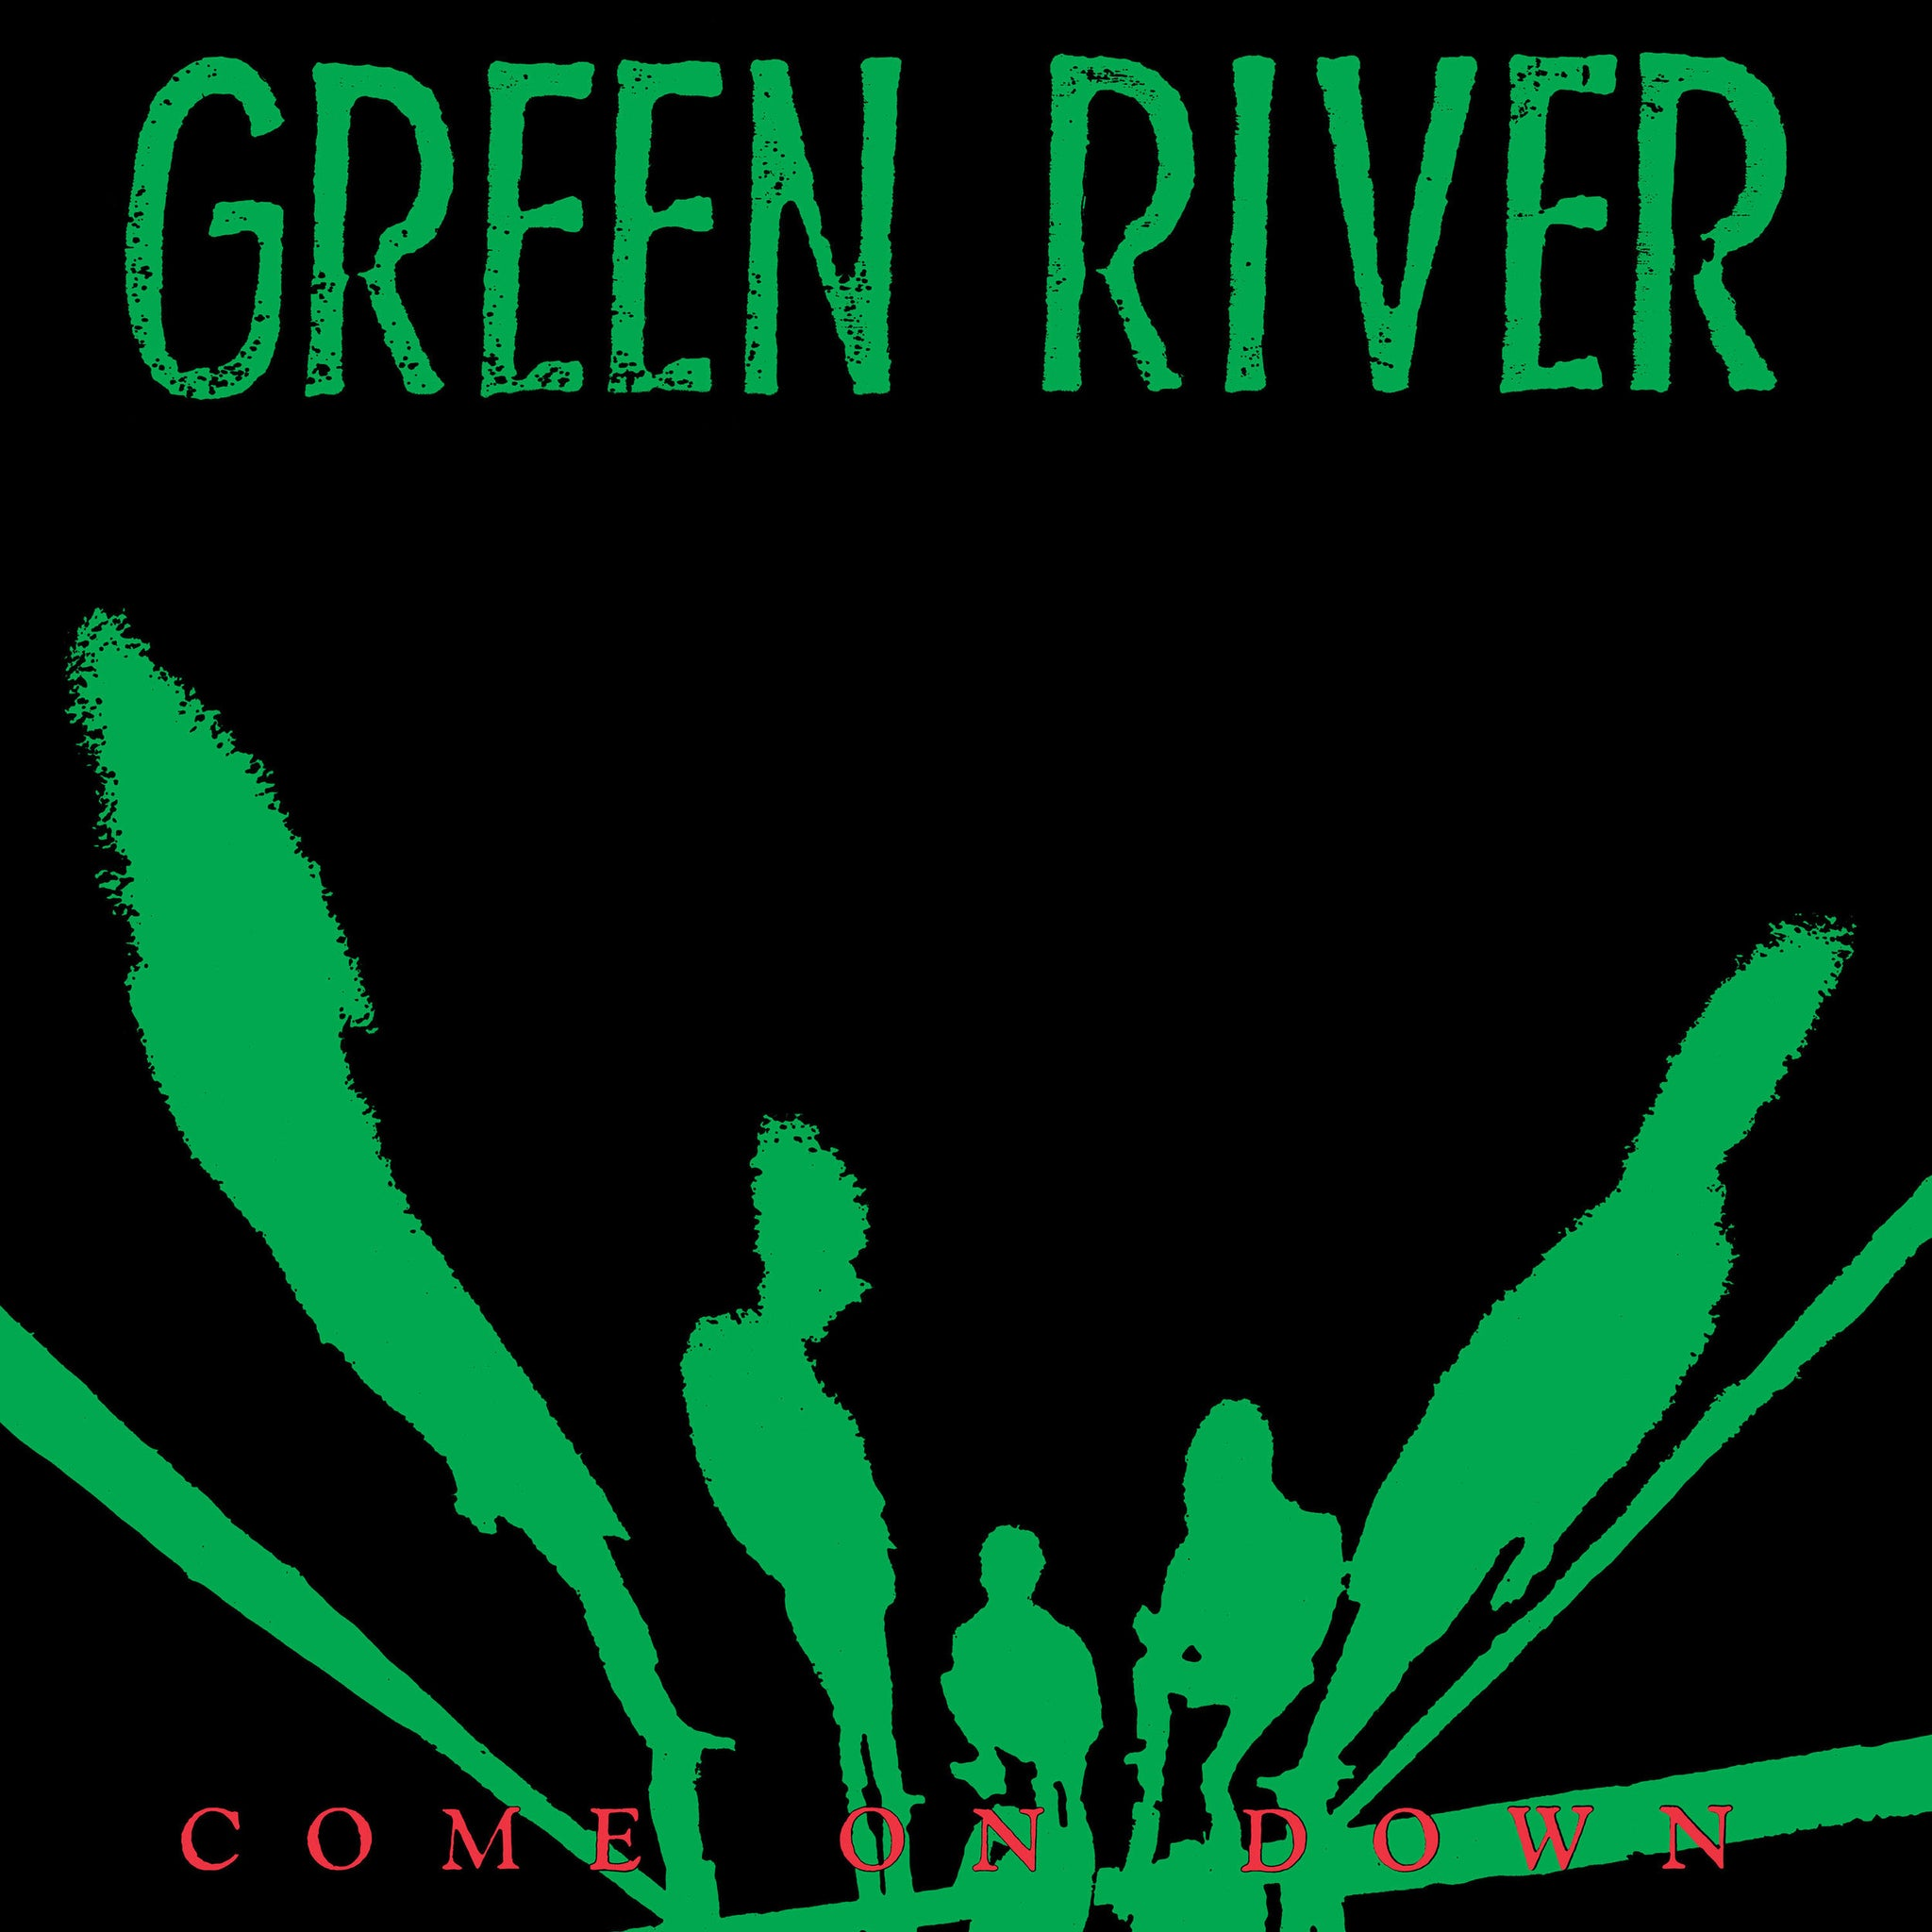 Green River - Come on Down - LP